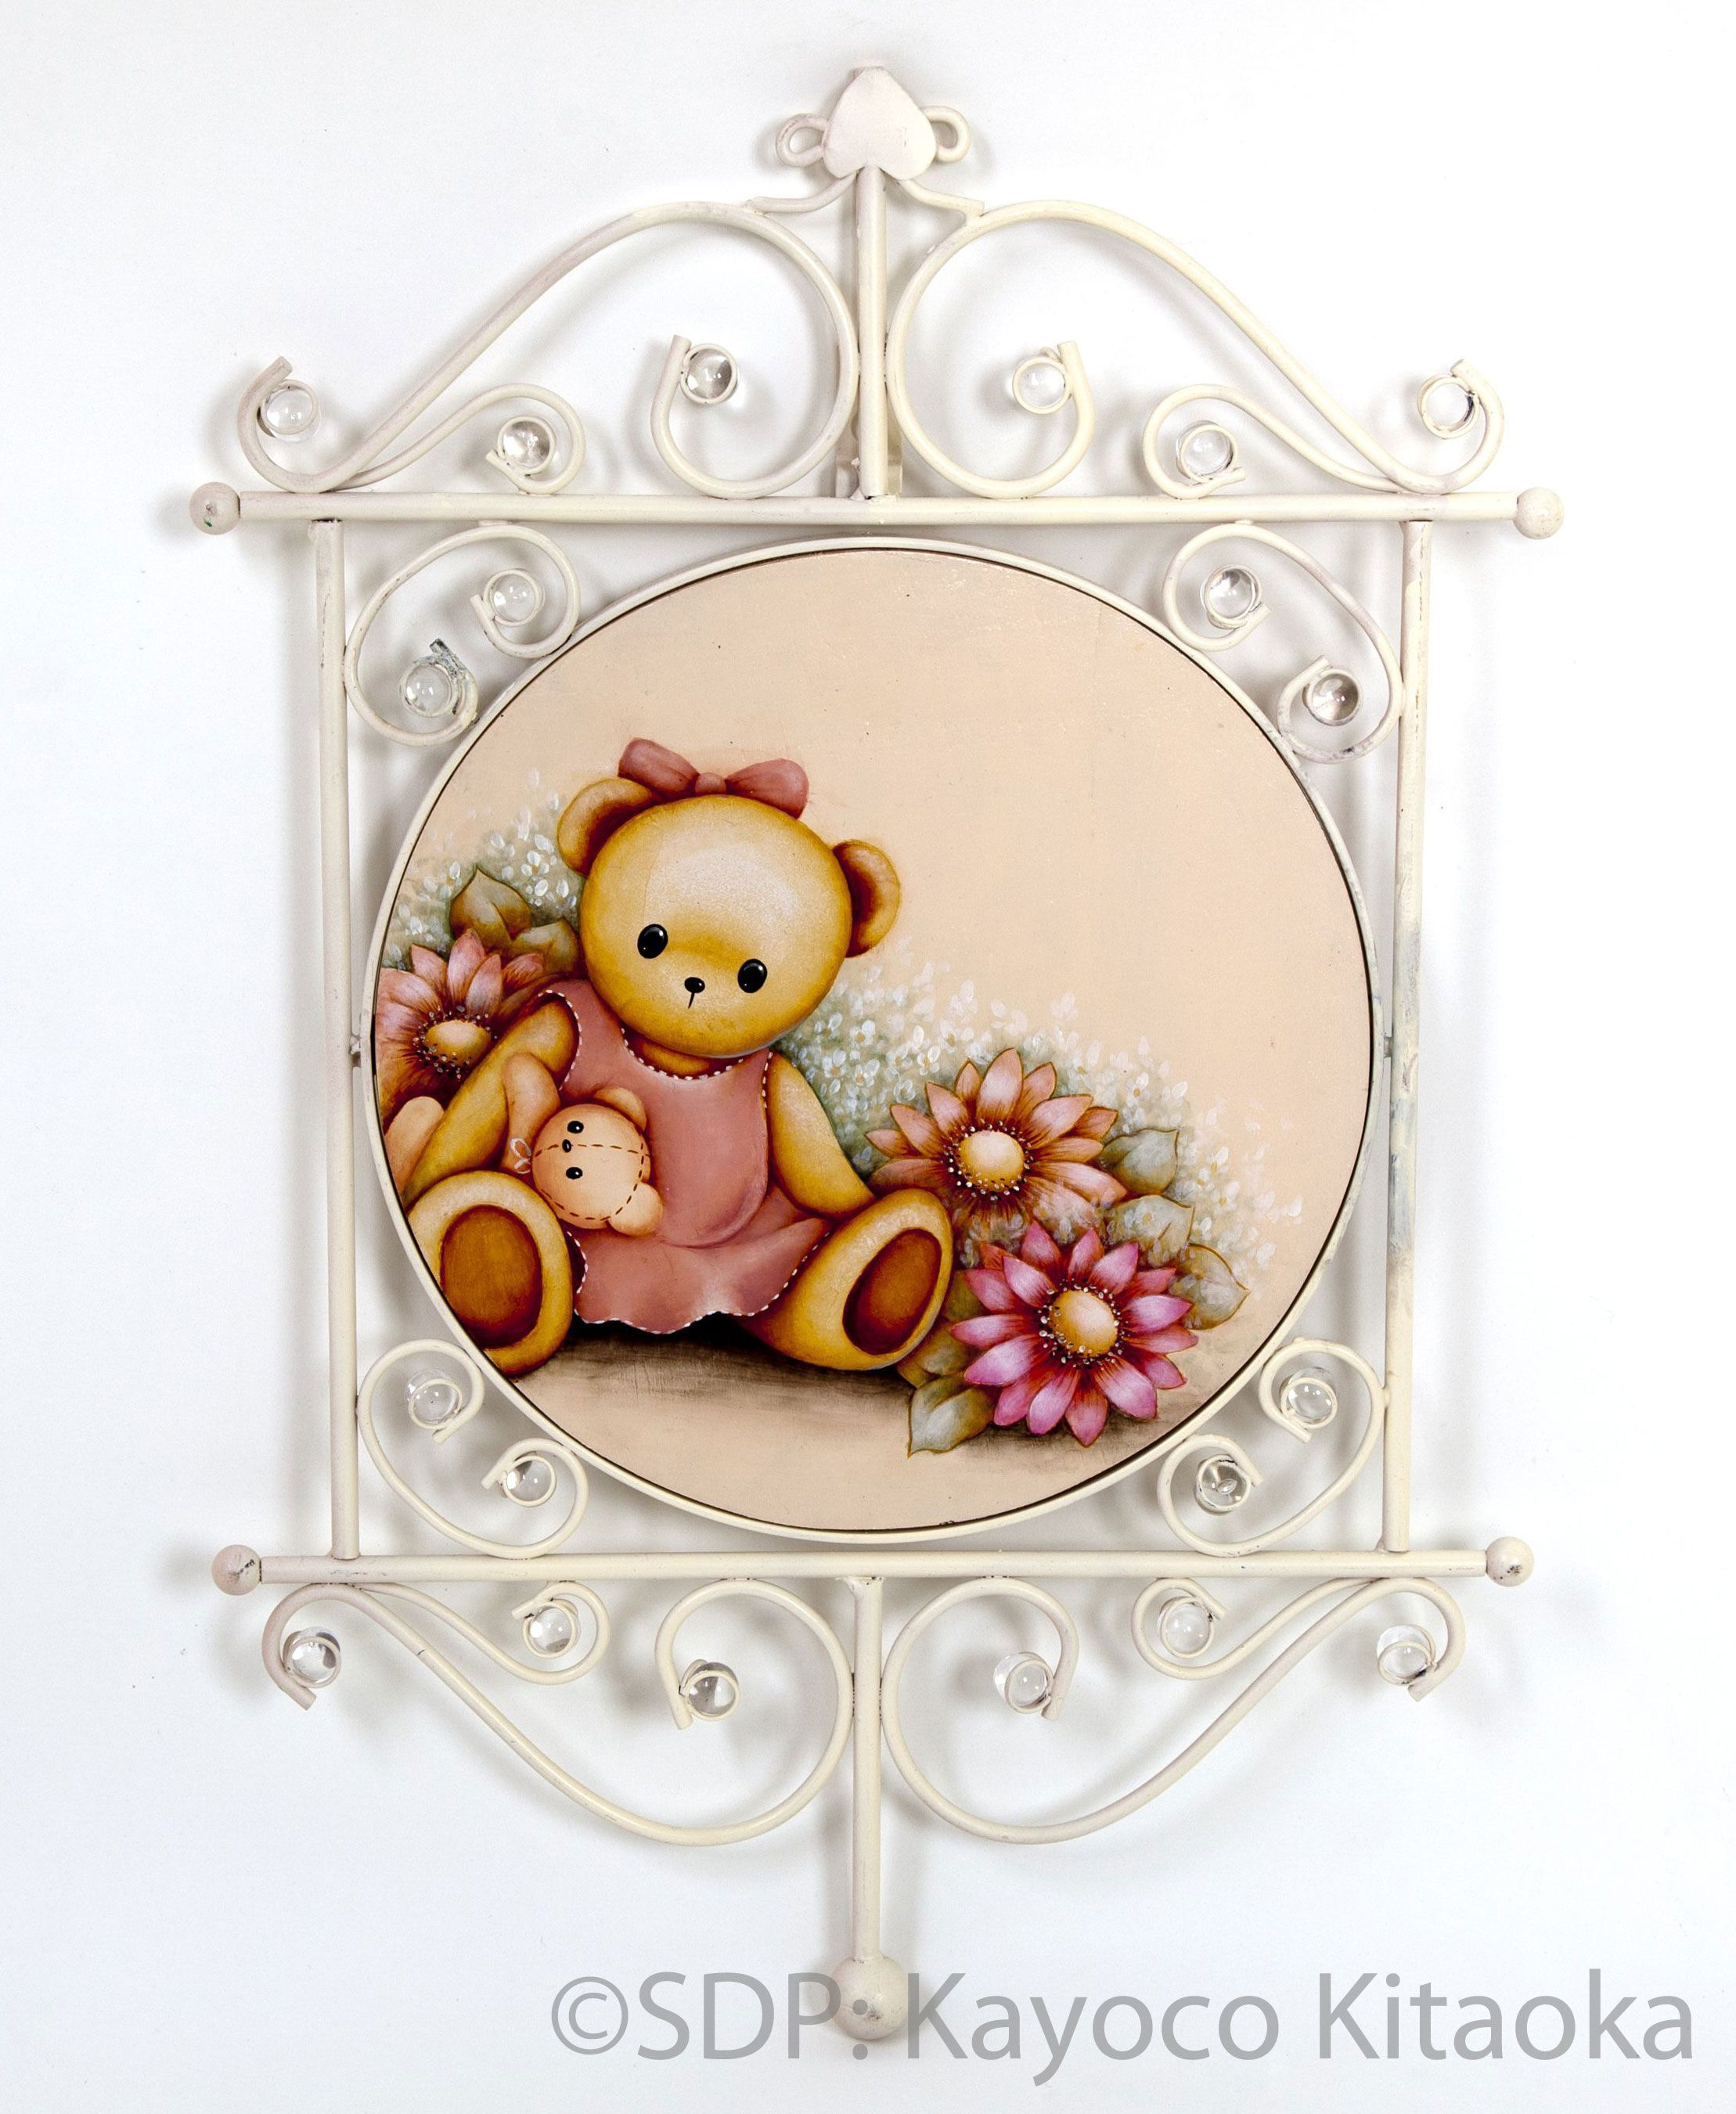 Kayoko Kitaoka – Margalet Bear – P-AN-004  Semi Finalist for the 2013 Pampered Palette Juried Exhibition  decorativepainters.org  Learn to paint with us! With our step by step pattern based designs, anyone can become a Master Decorative Artist.